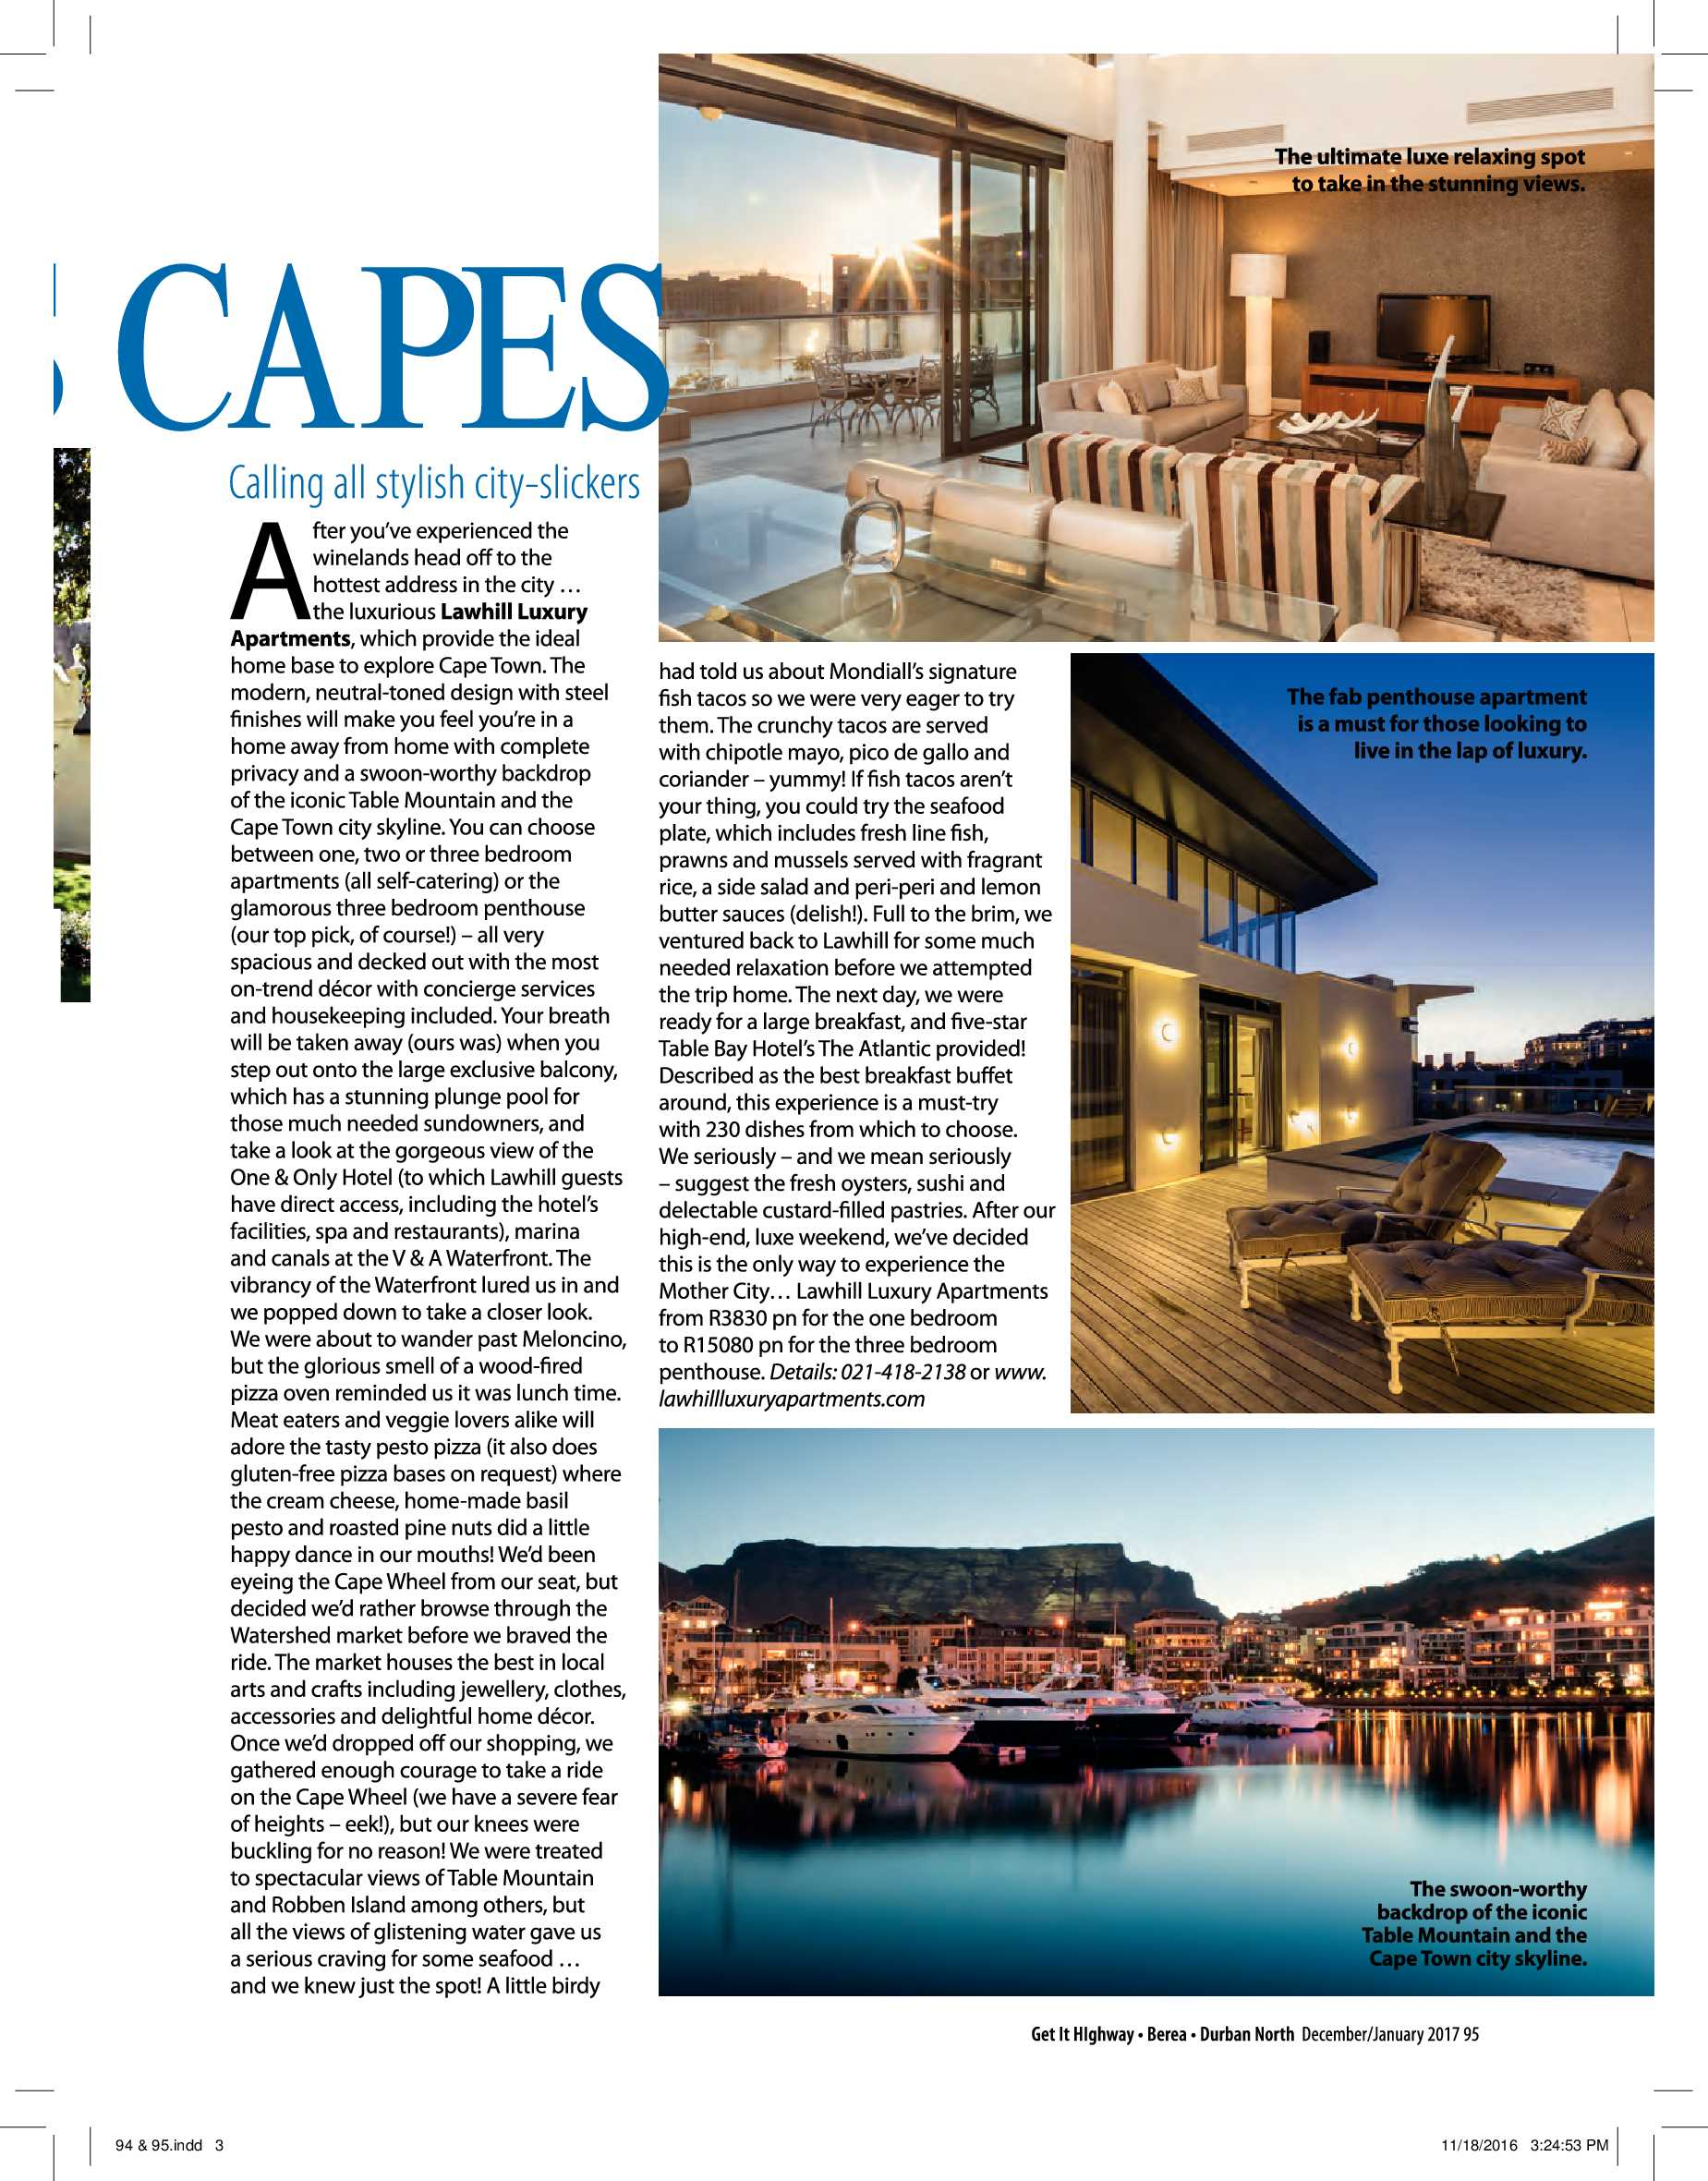 durban-get-it-magazine-december-2016-epapers-page-97